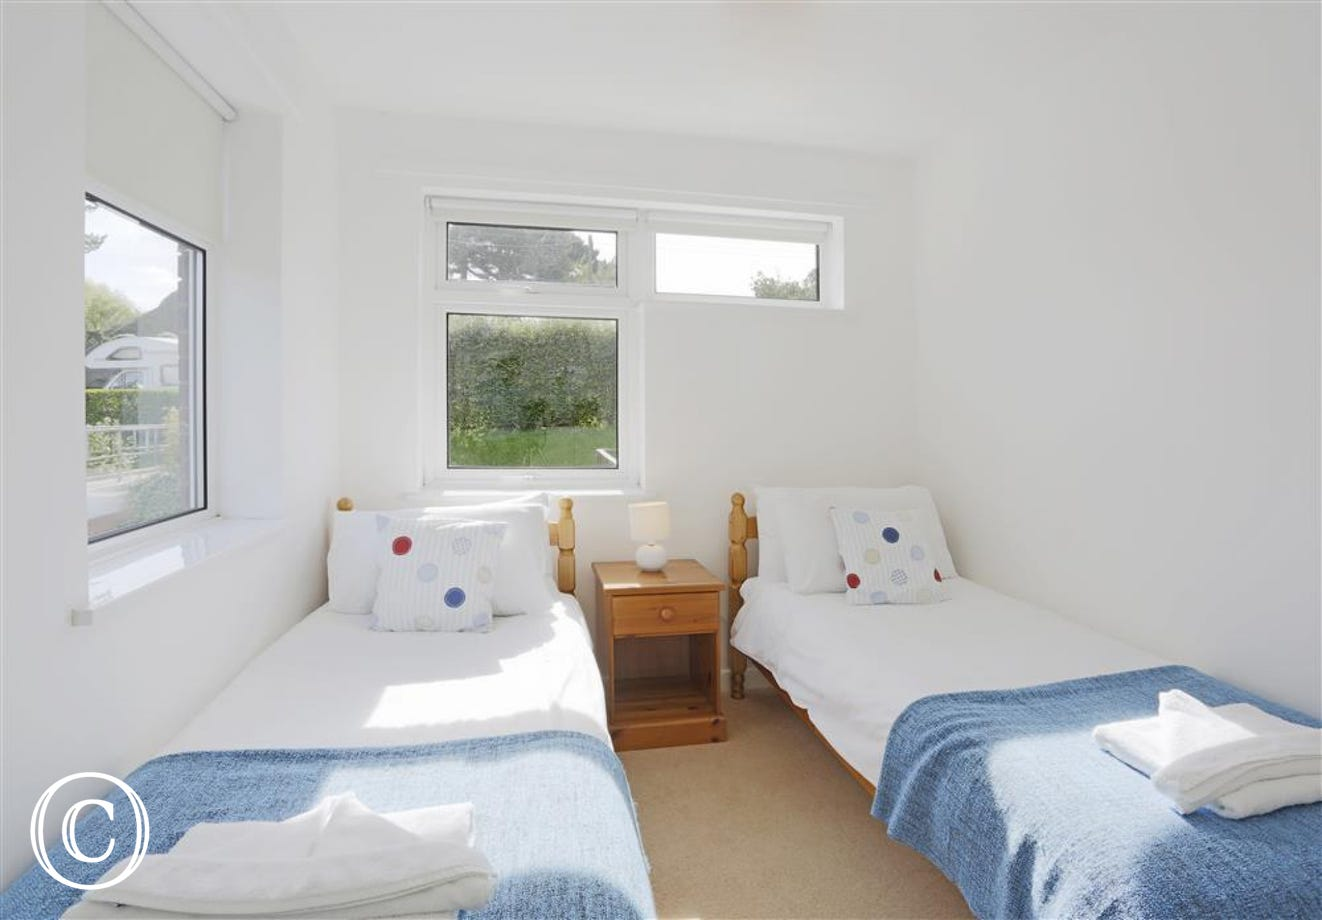 This twin bedroom has 2'6 single beds but sadly no balcony. It is decorated in a blue and white colour scheme.